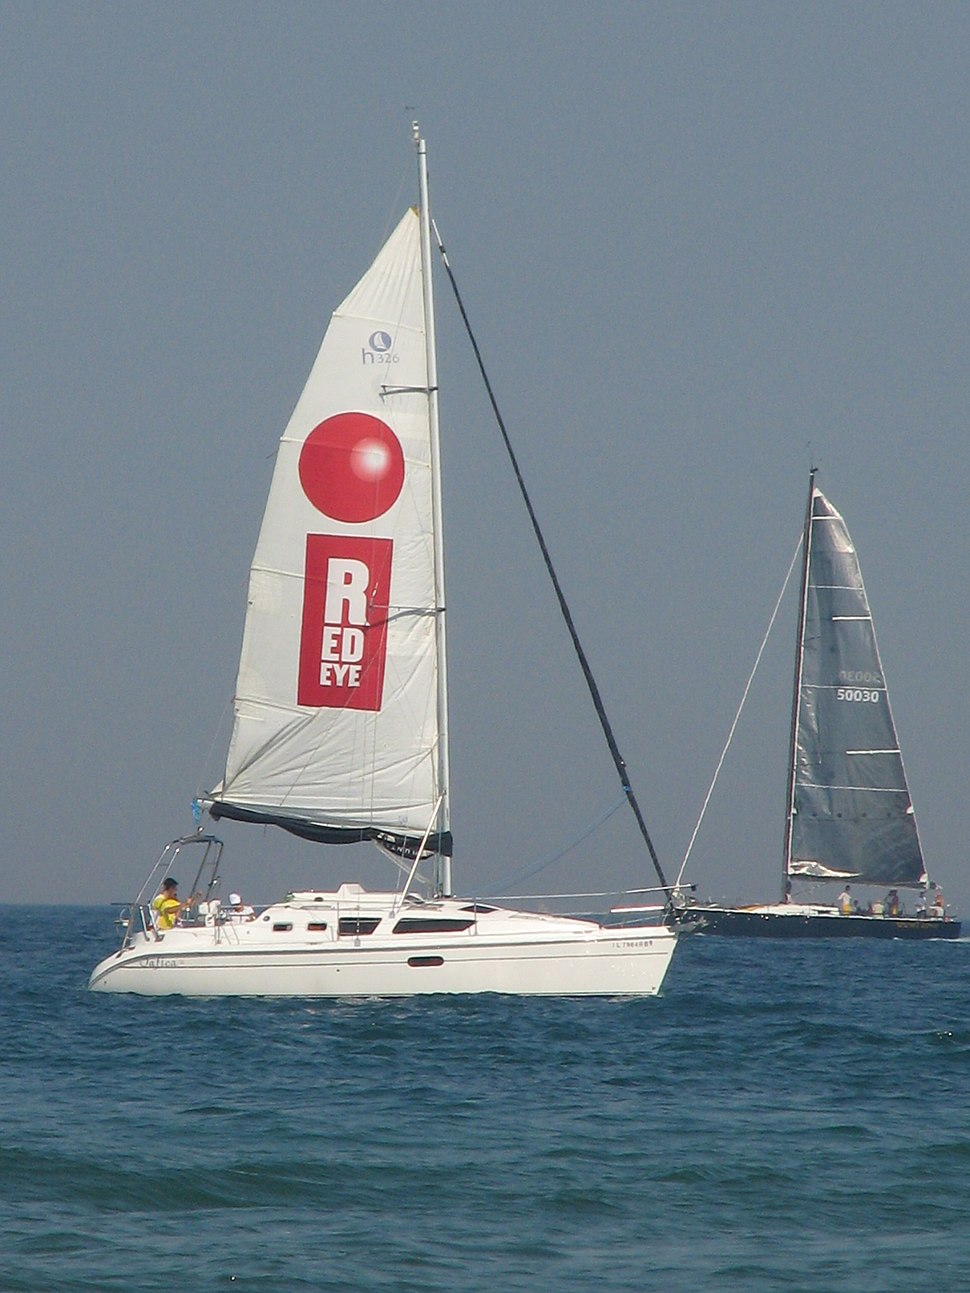 Redeye Sailboat